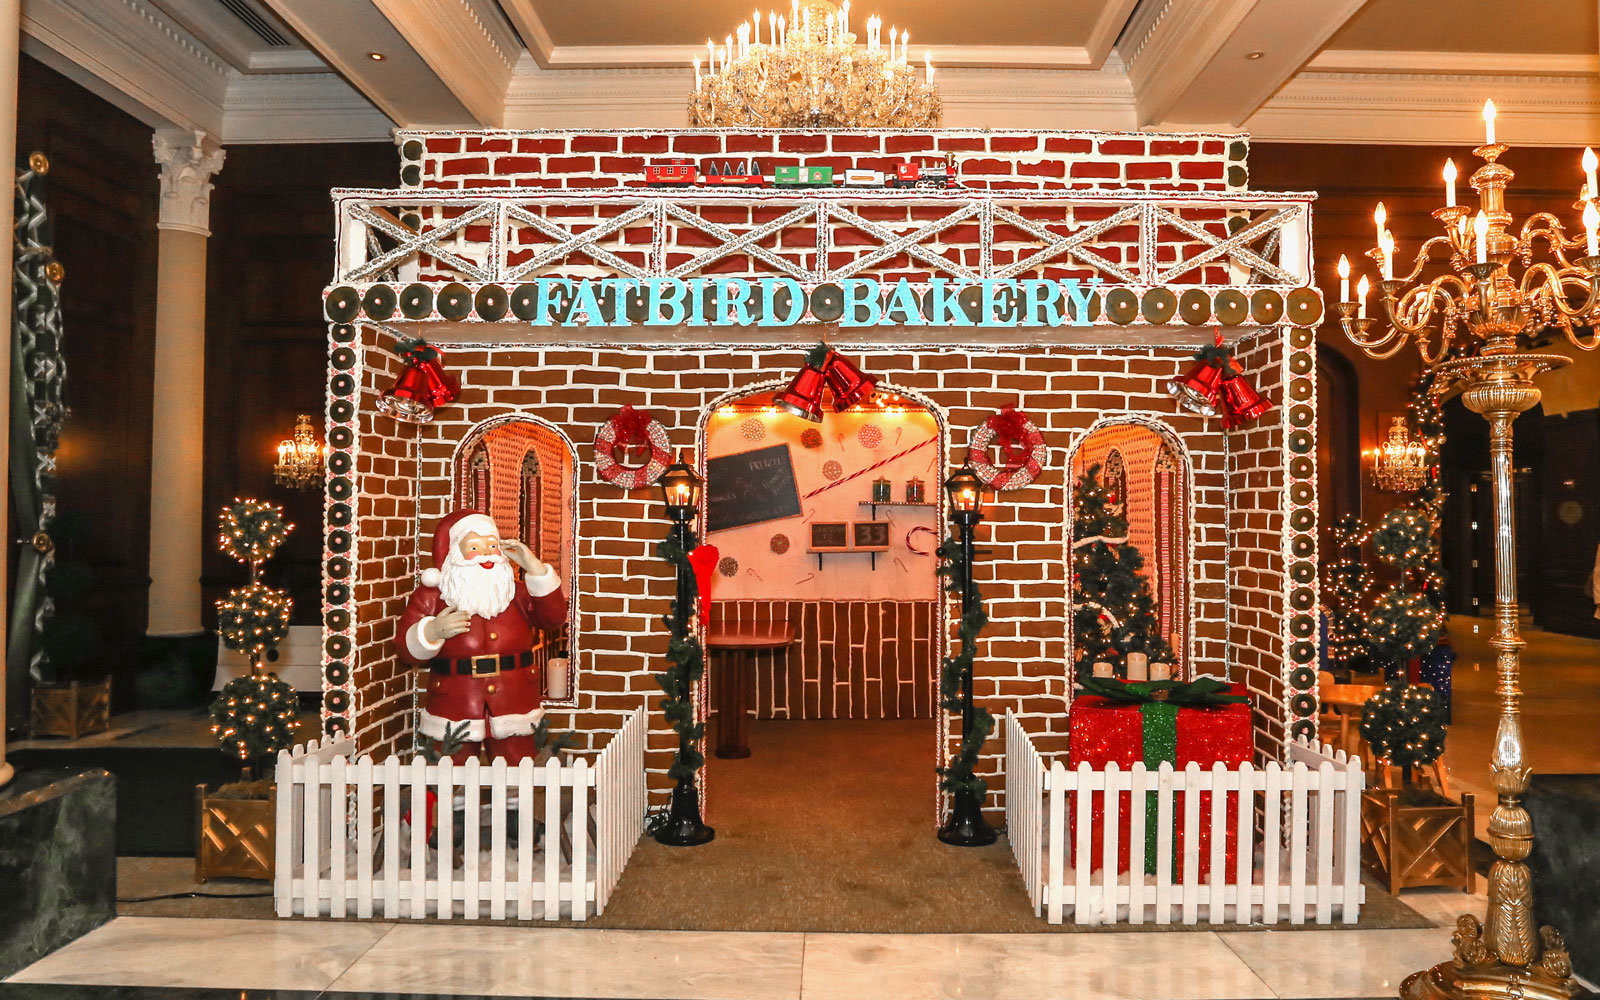 This Life Size Gingerbread House Is Sure To Get You In The